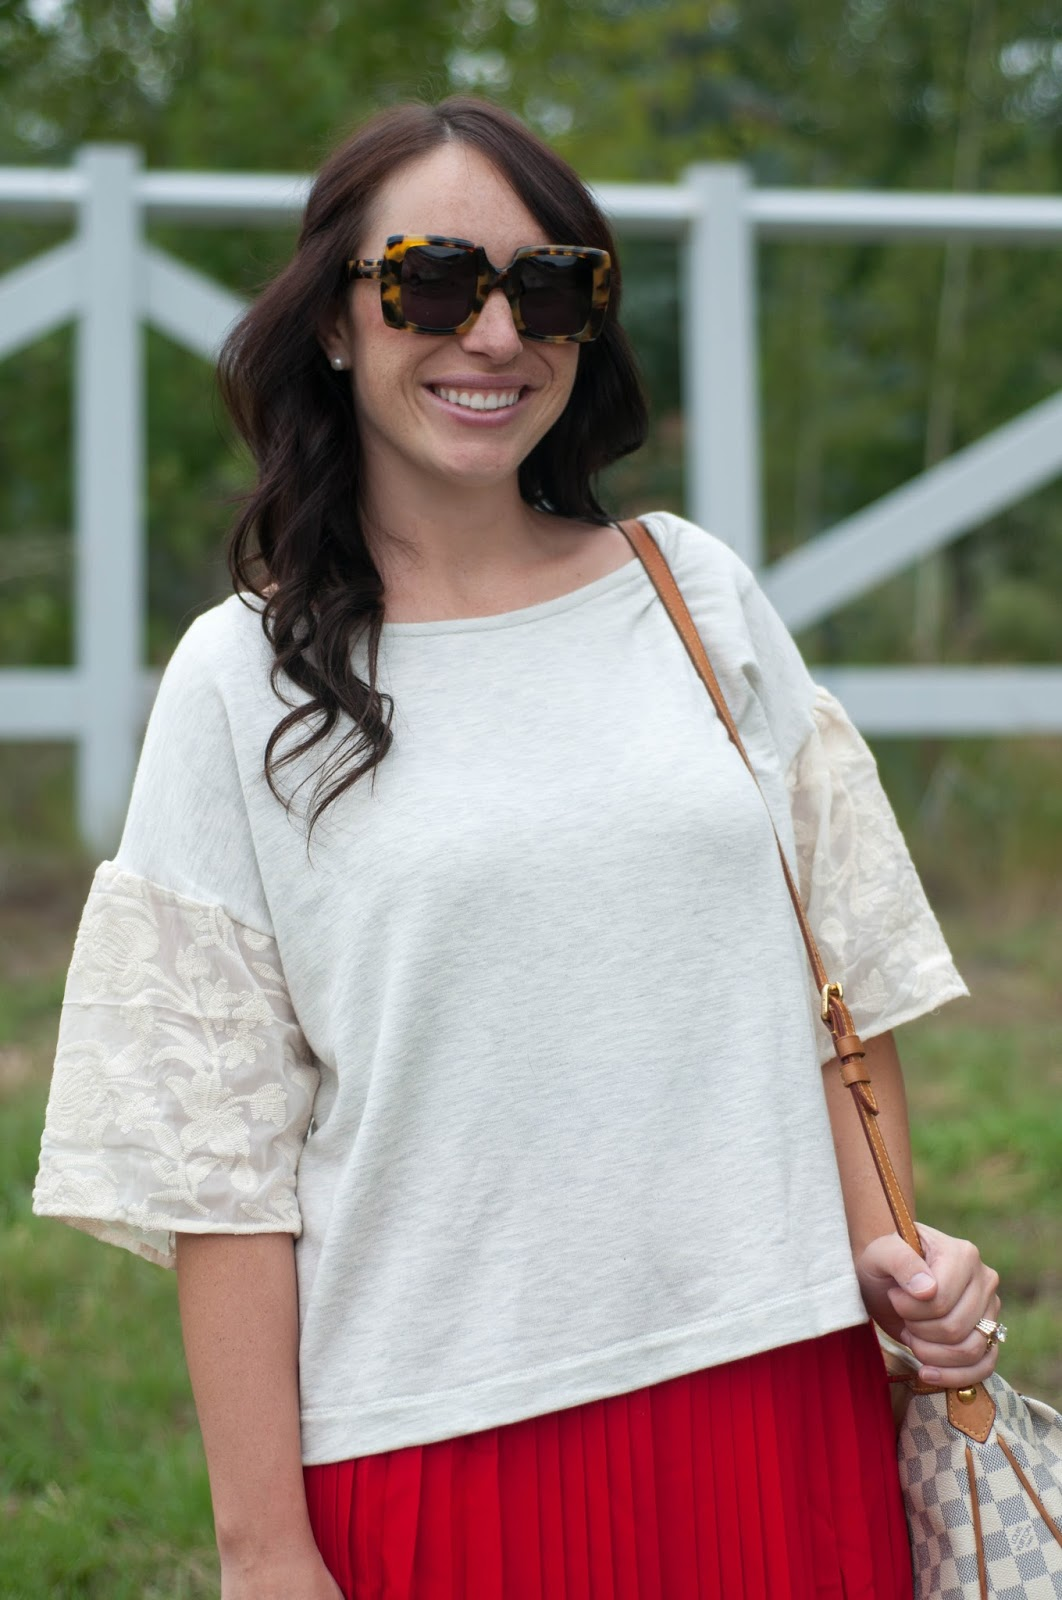 anthropologie top, anthropologie ootd, ootd, lace top, karen walker, karen walker sunglasses, louis vuitton handbag